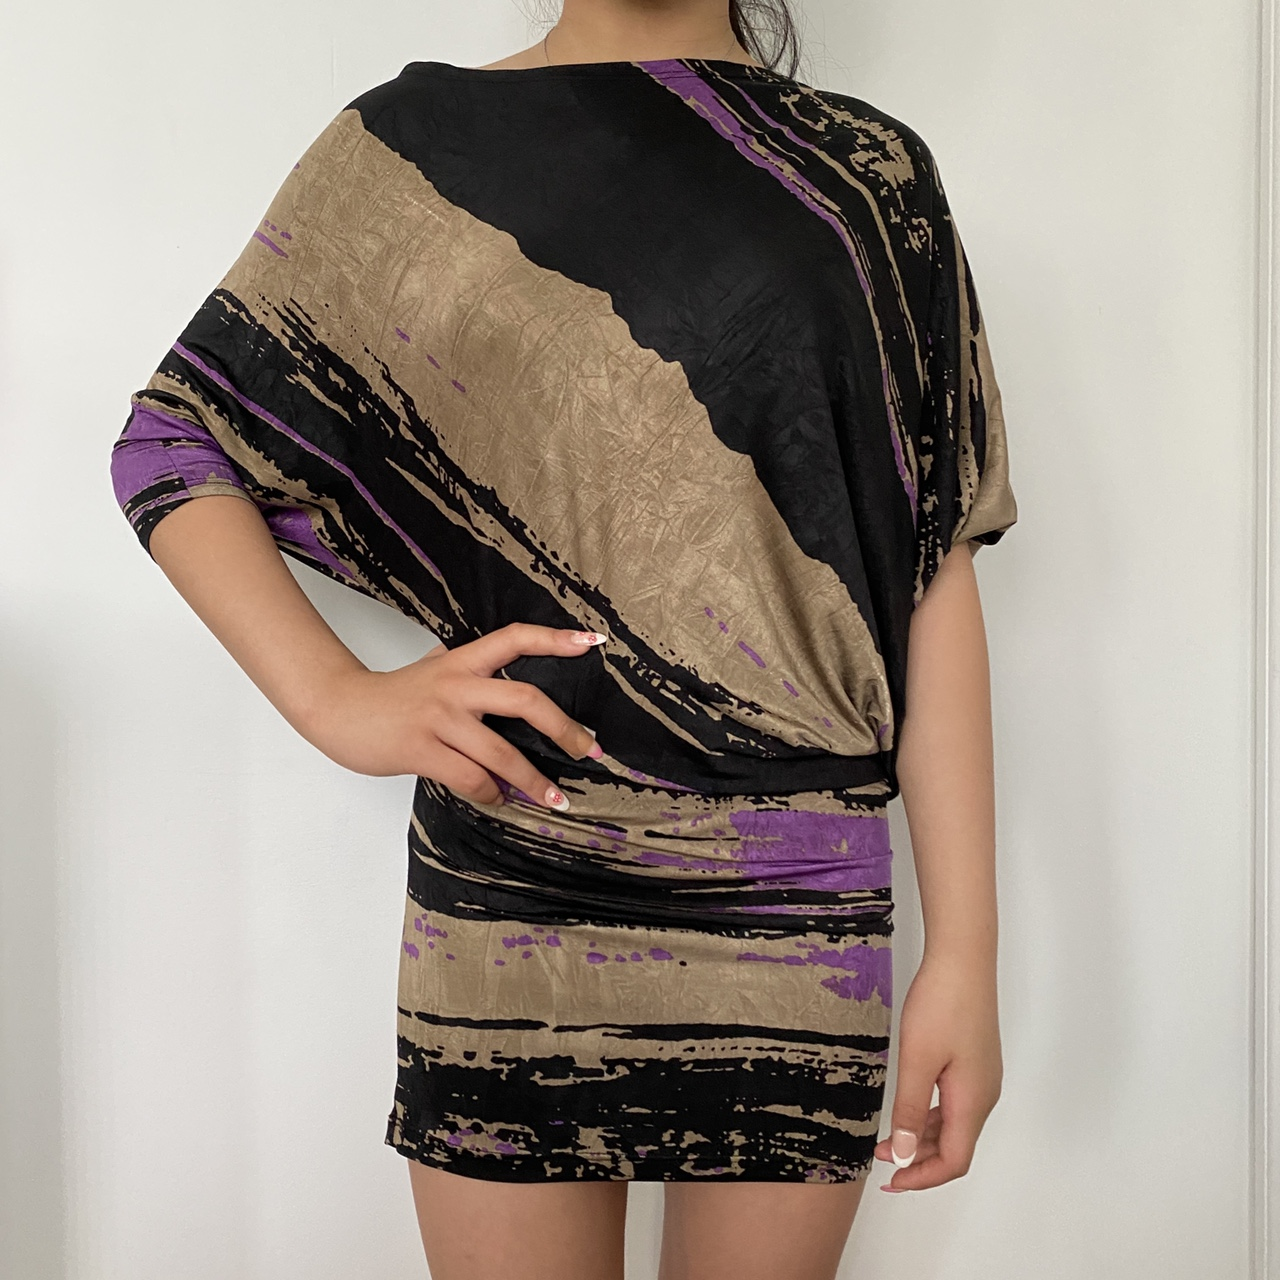 Product Image 1 - ABSTRACT VINTAGE PATTERNED DRESS/ SHIRT-